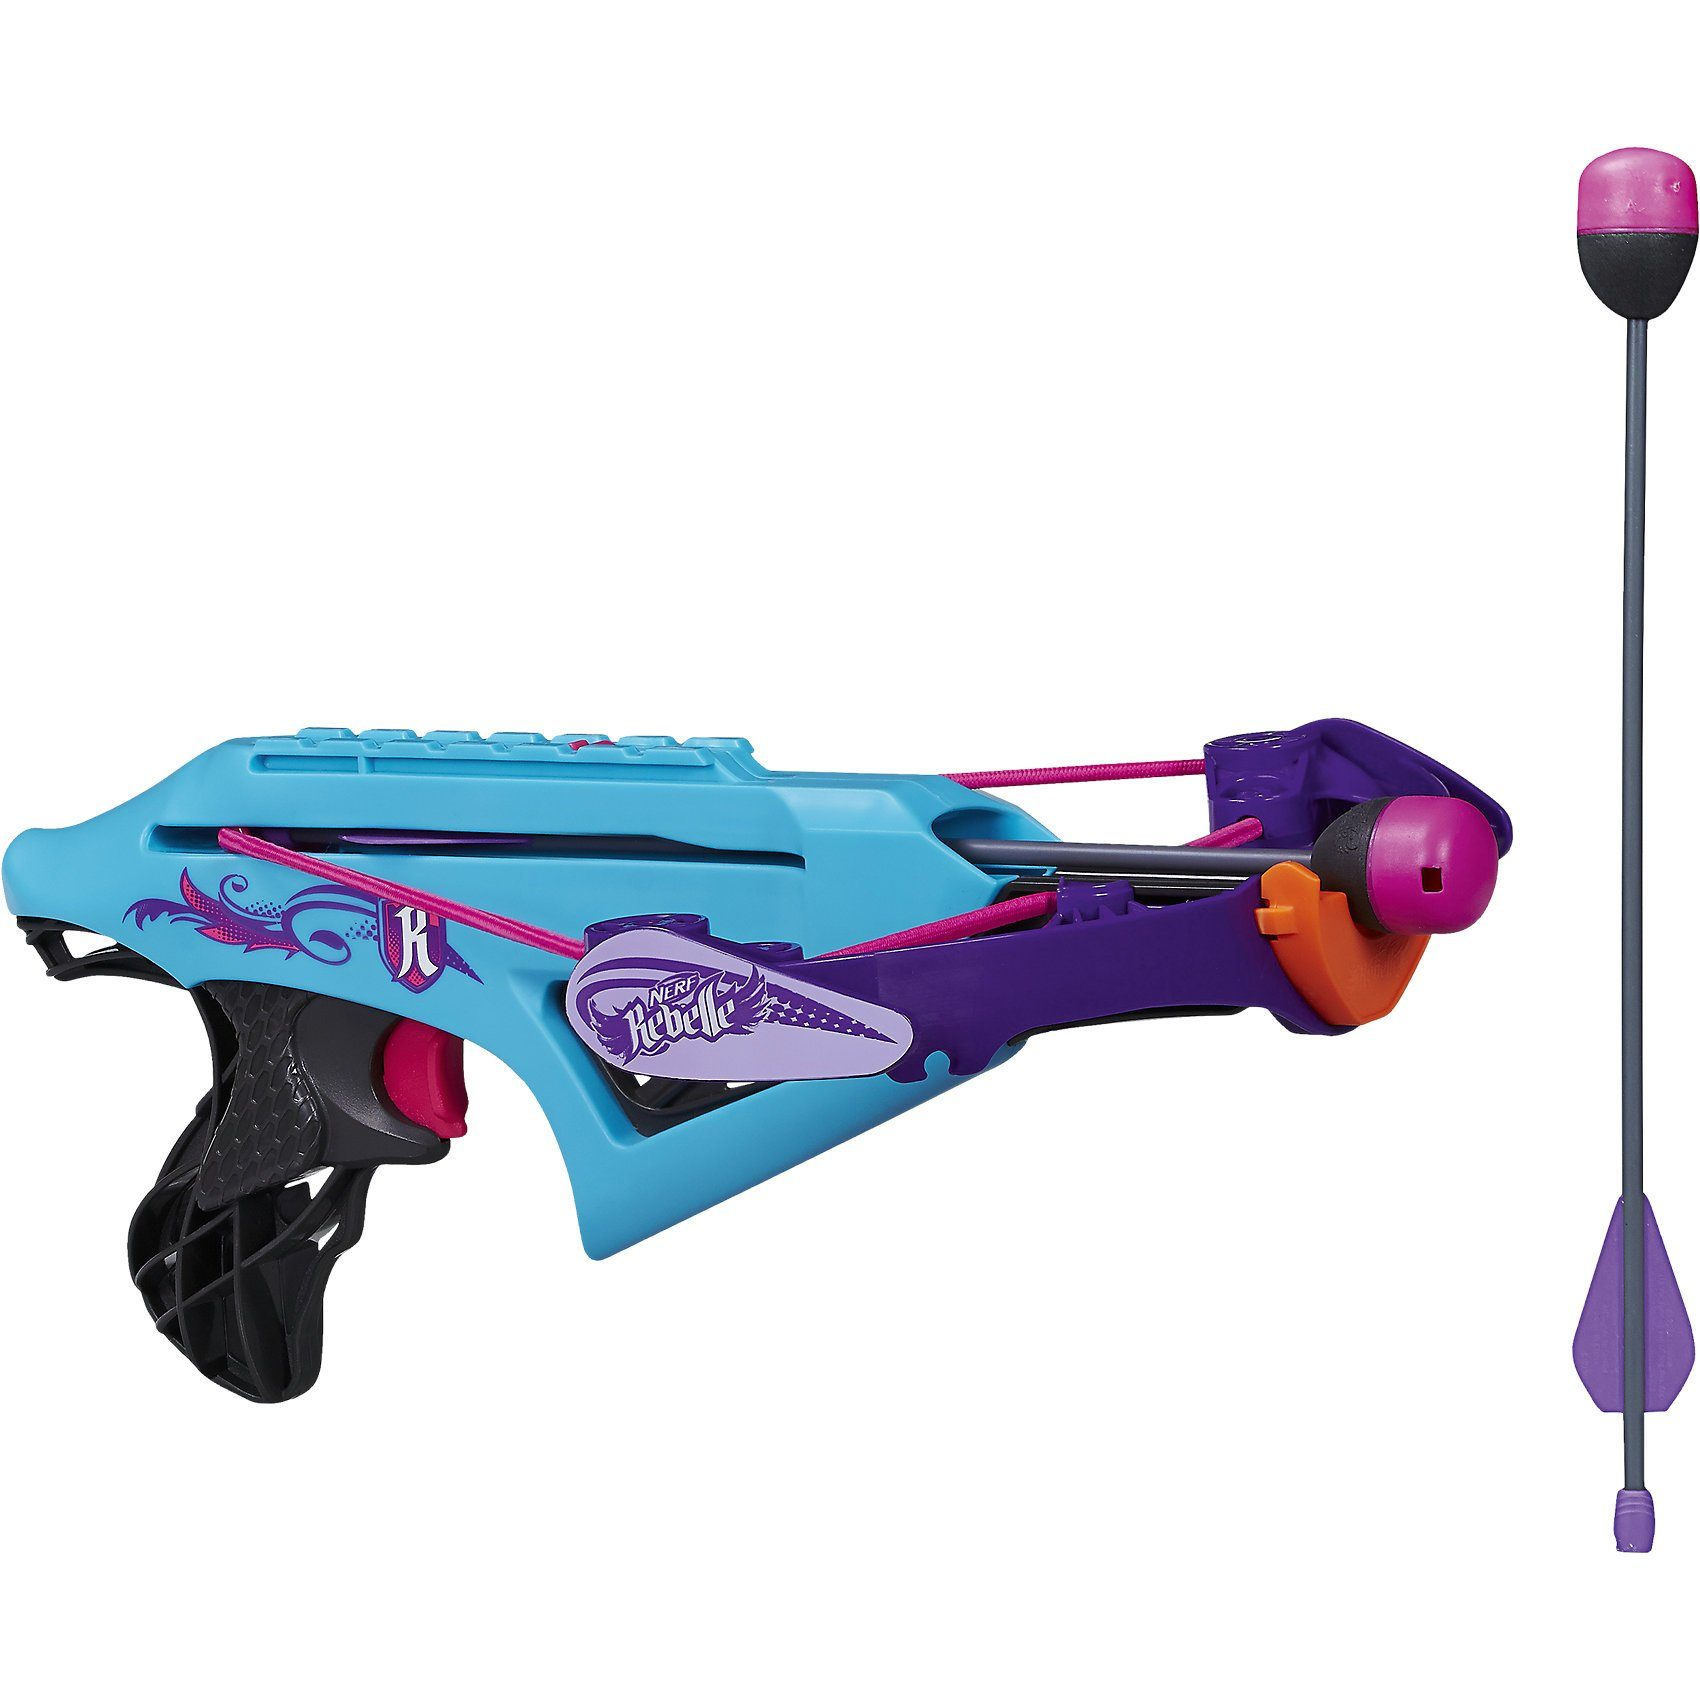 Hasbro Nerf Rebelle Courage Crossbow